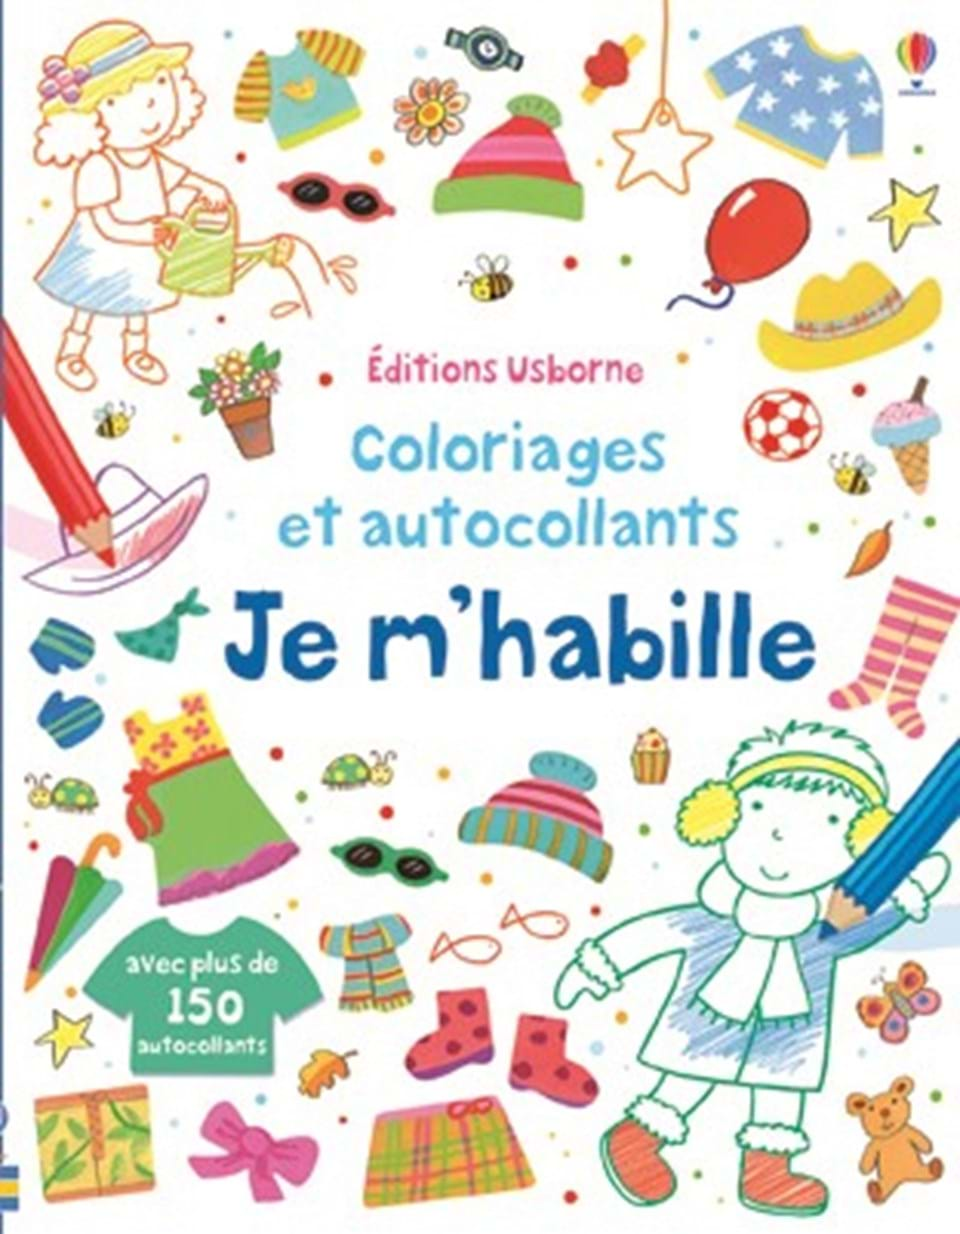 Je m 39 habille ditions usborne for Statut illustrateur